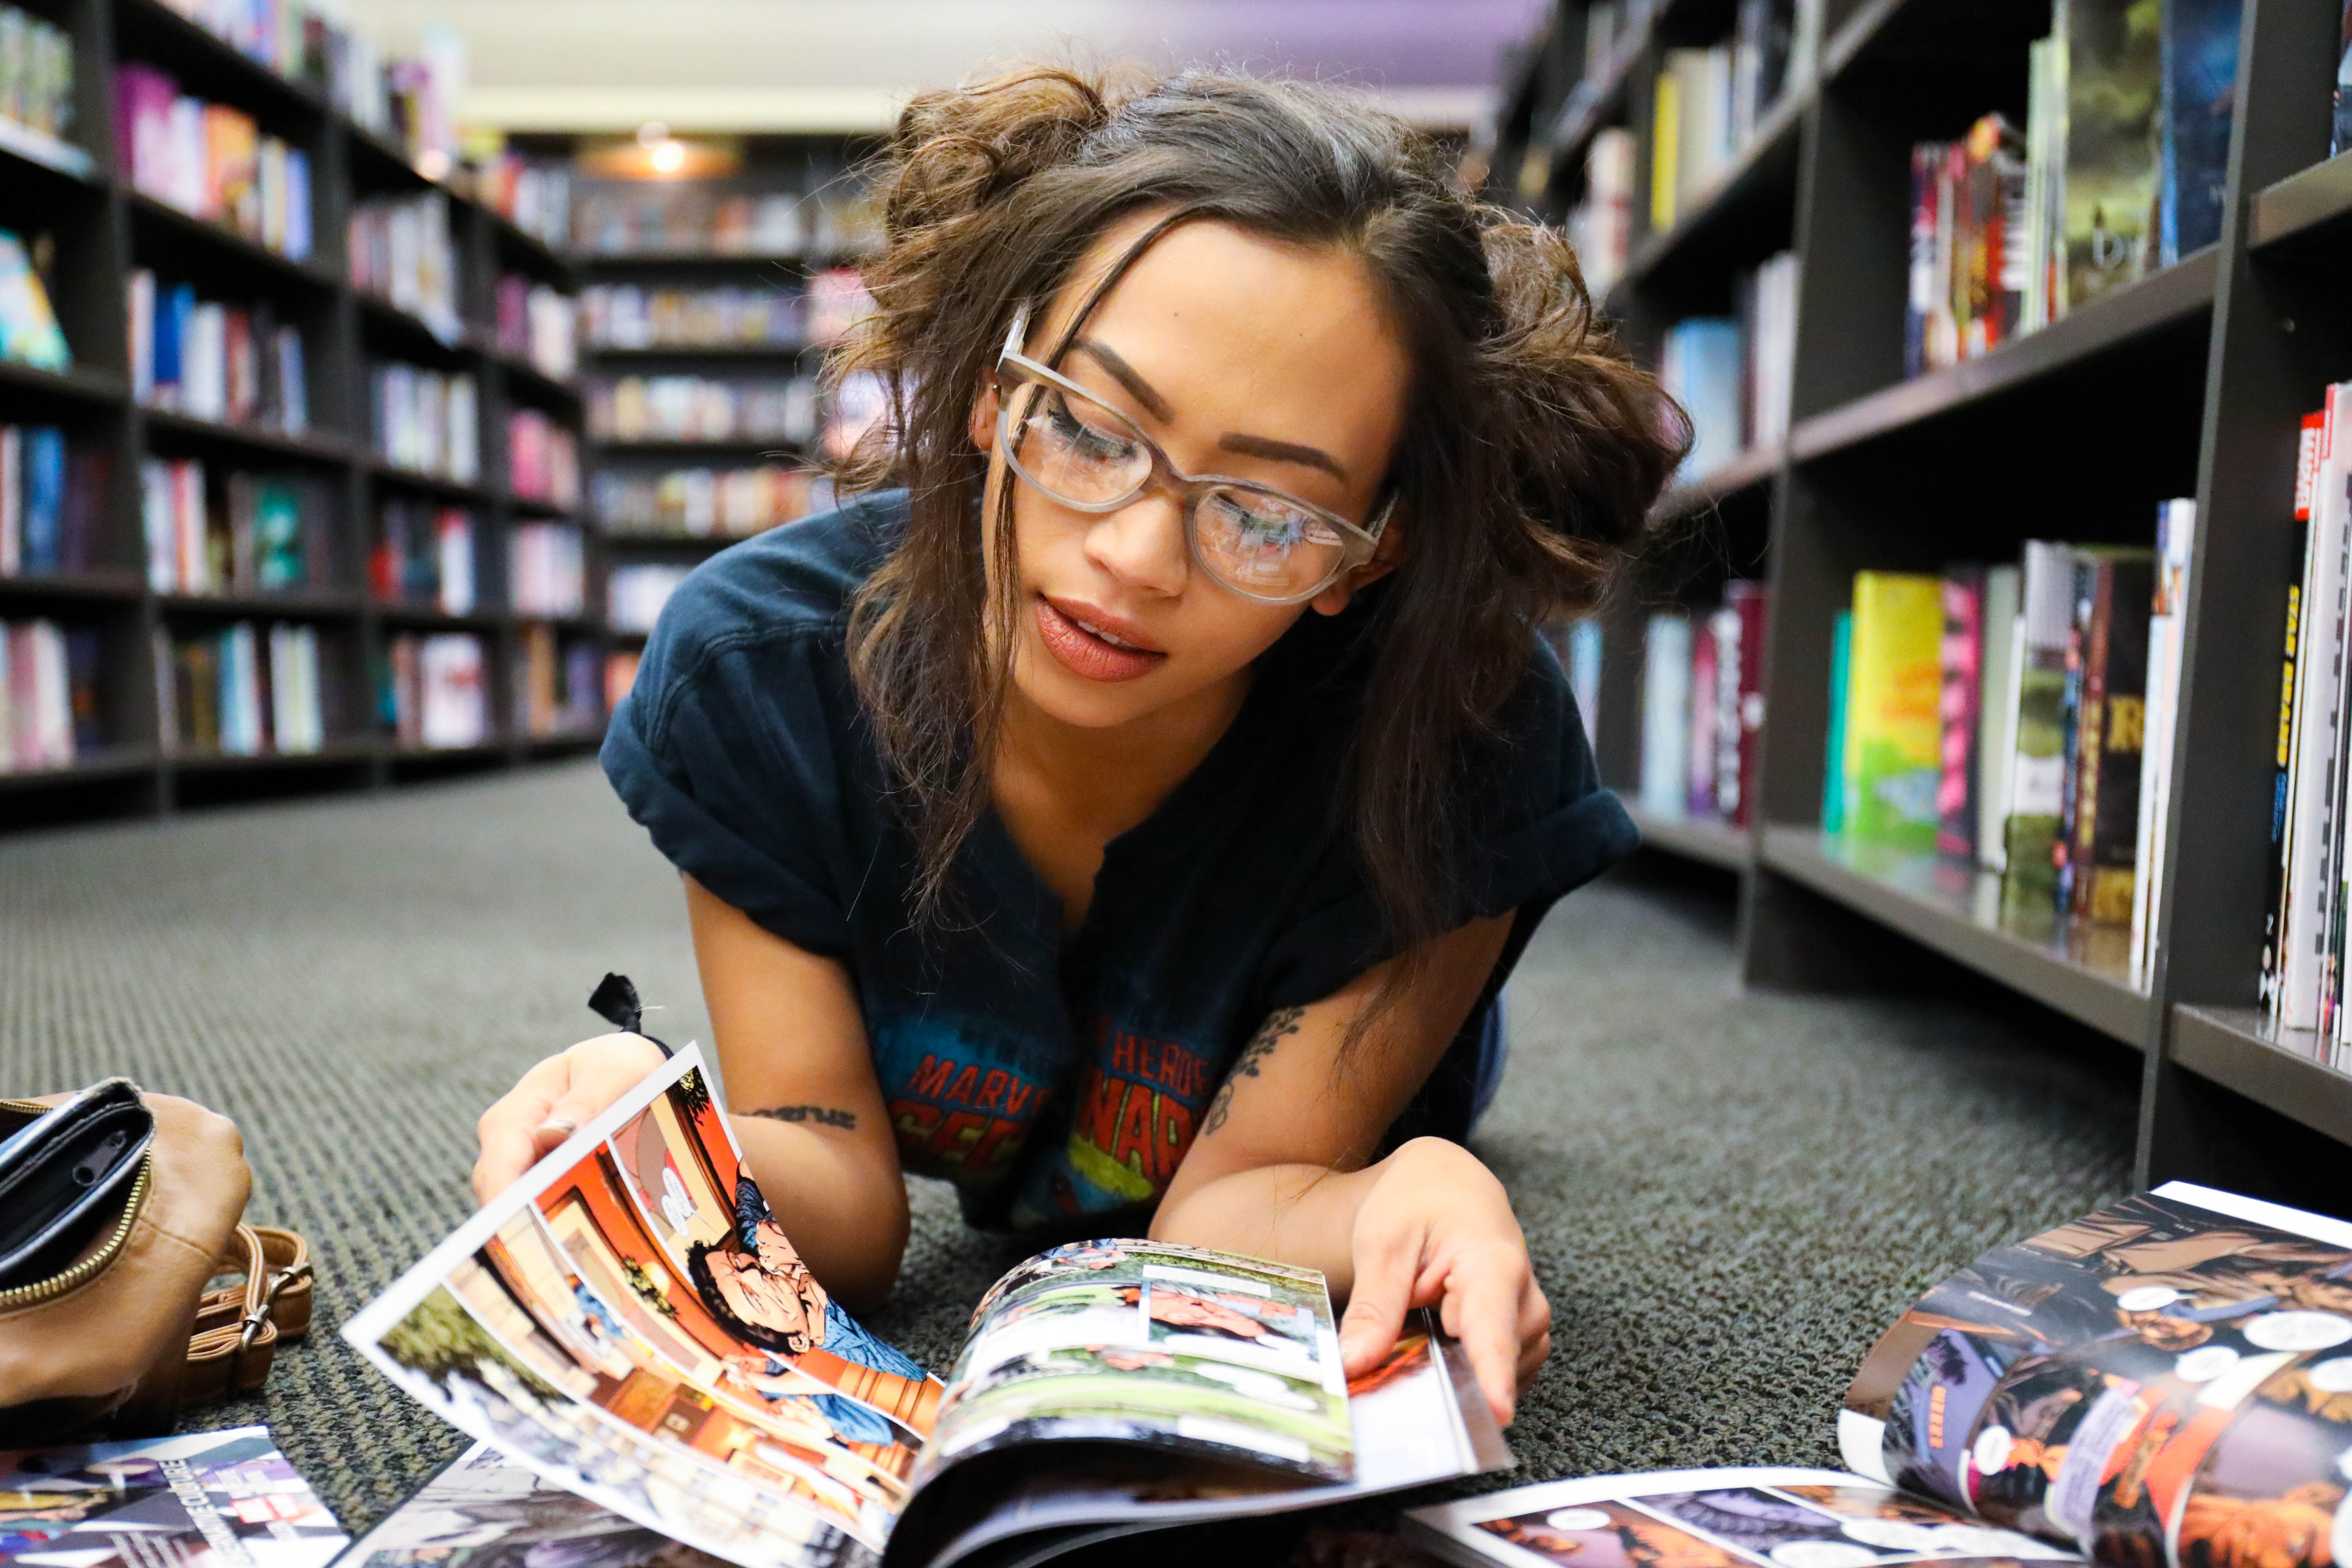 Teen Book Swap